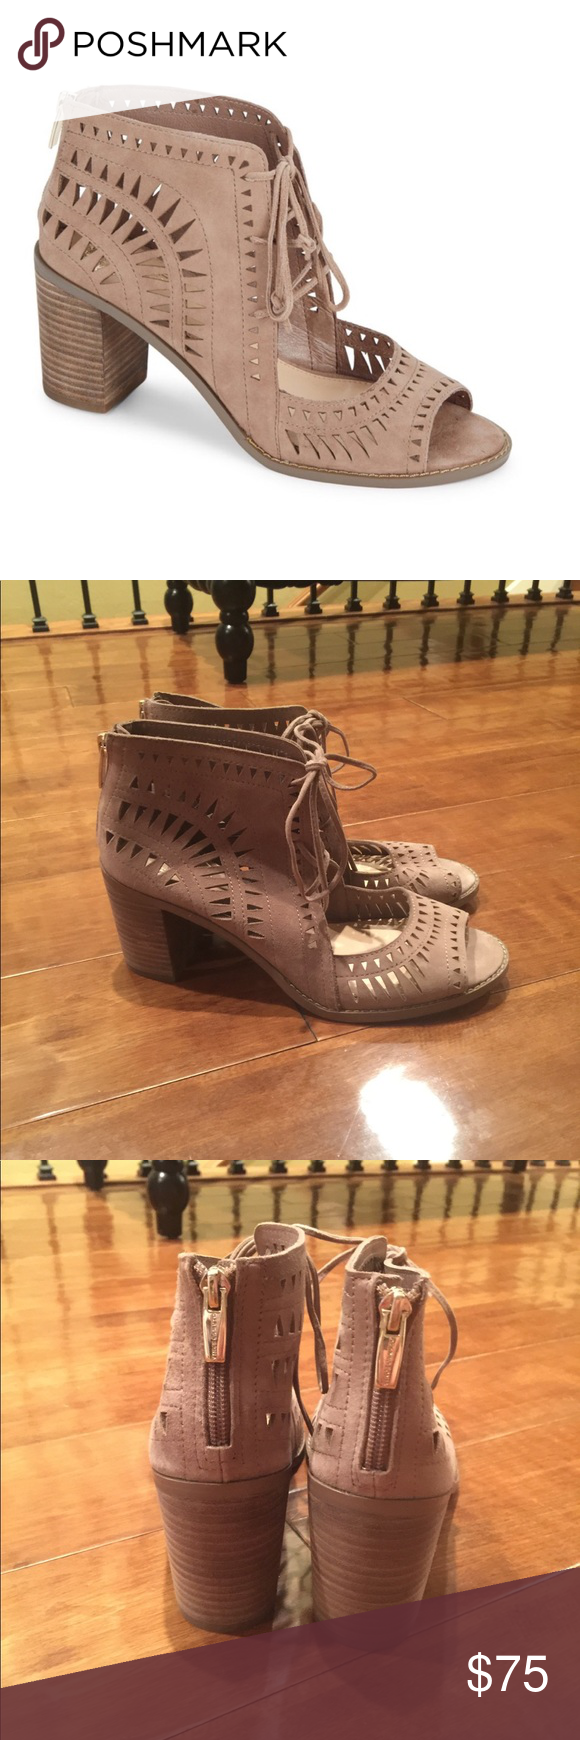 top quality for sale Vince Camuto Suede Cutout Ankle Boots nicekicks online T69JyPM